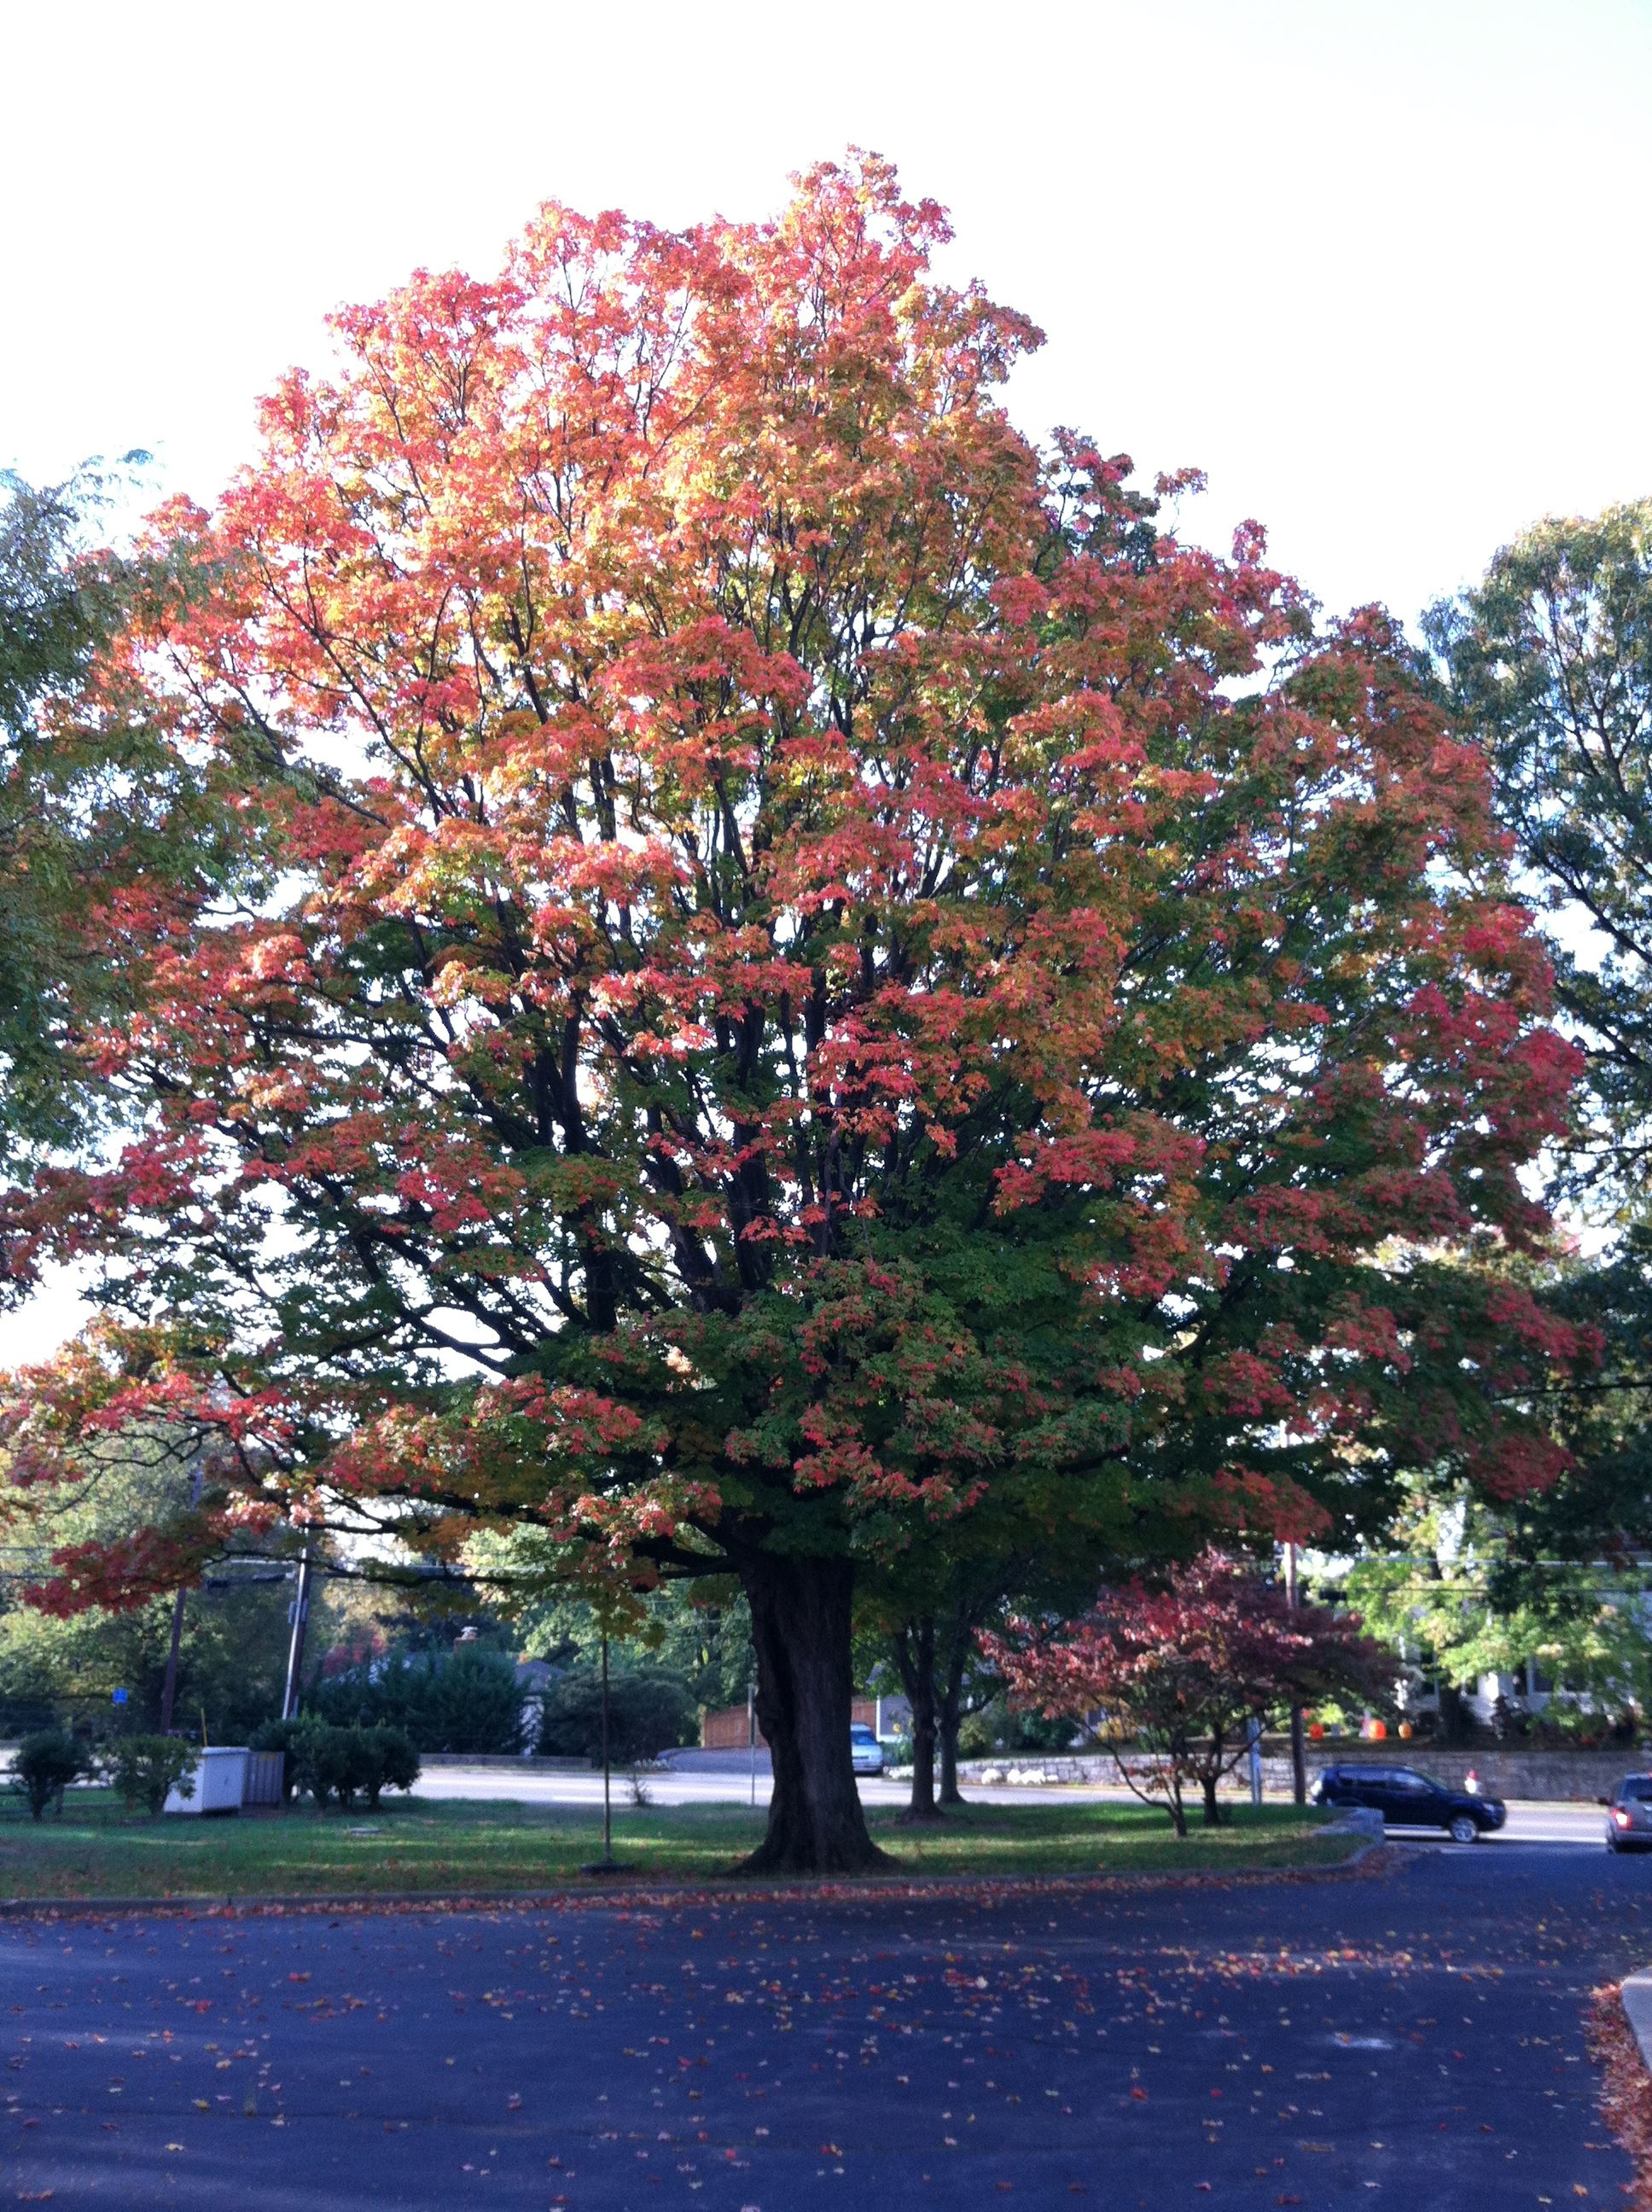 Specimen tree 6290 (513 E-Broad)